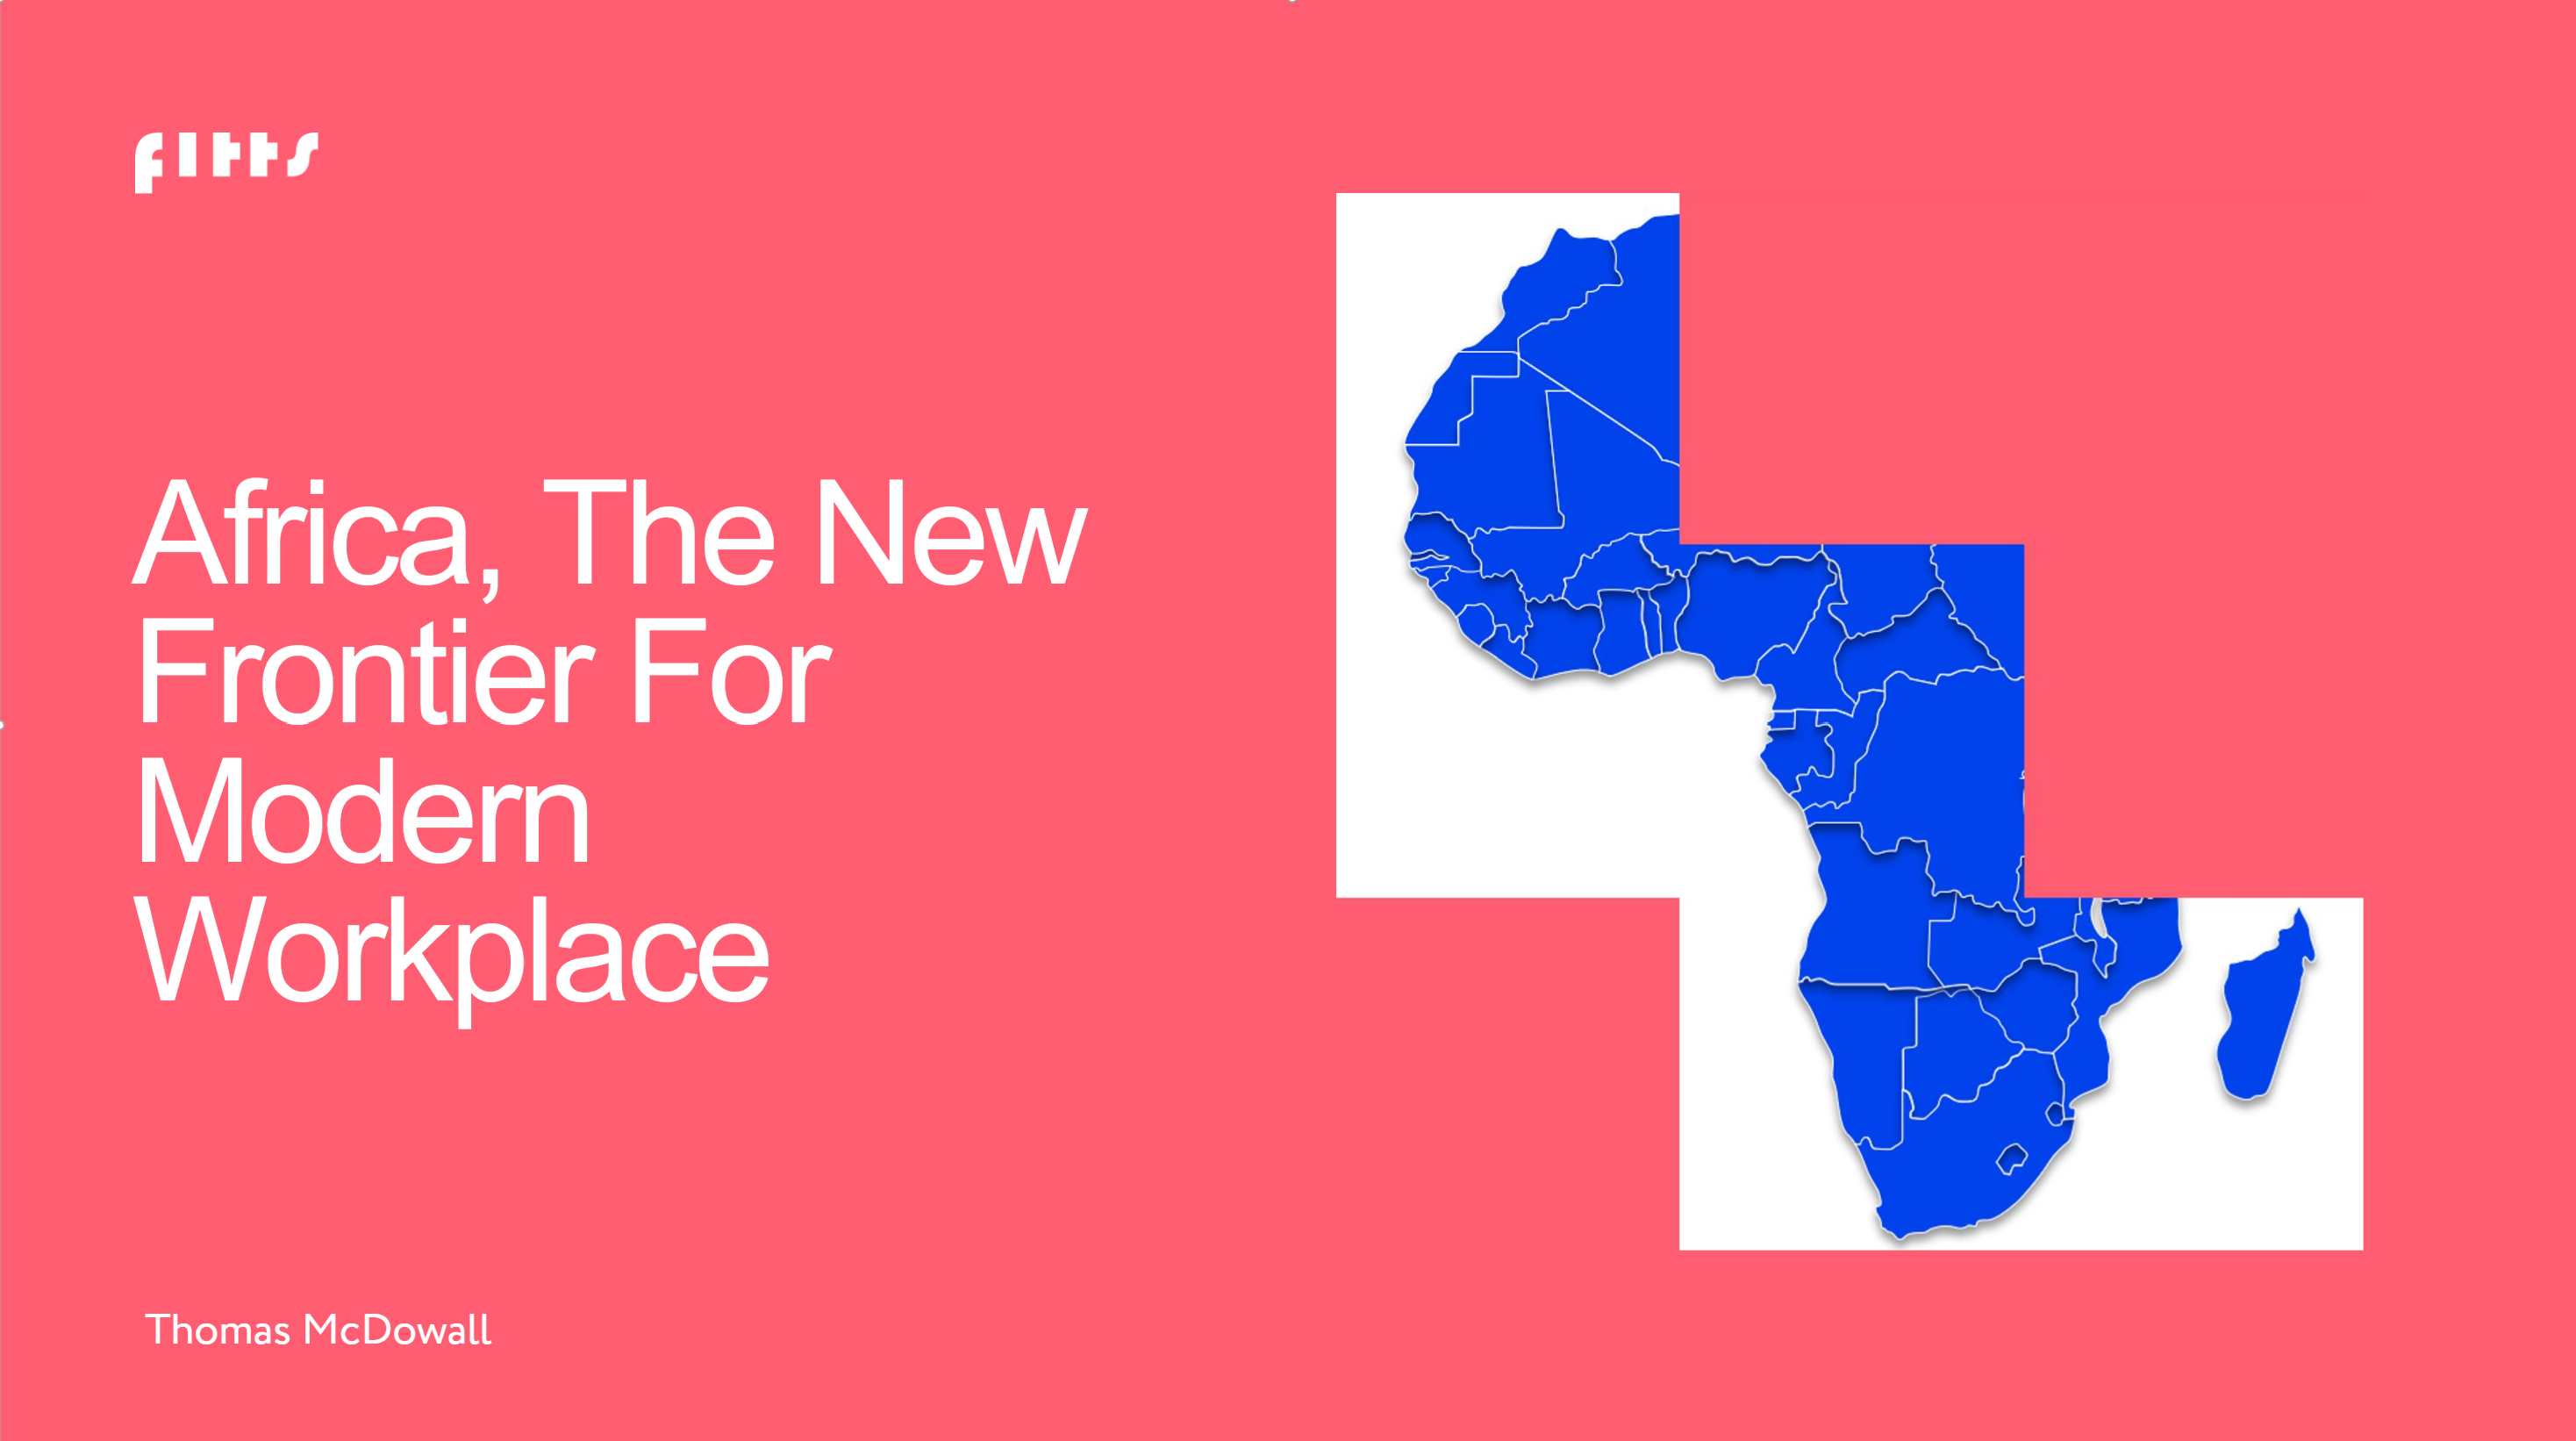 africa, the new frontier of modern workplace